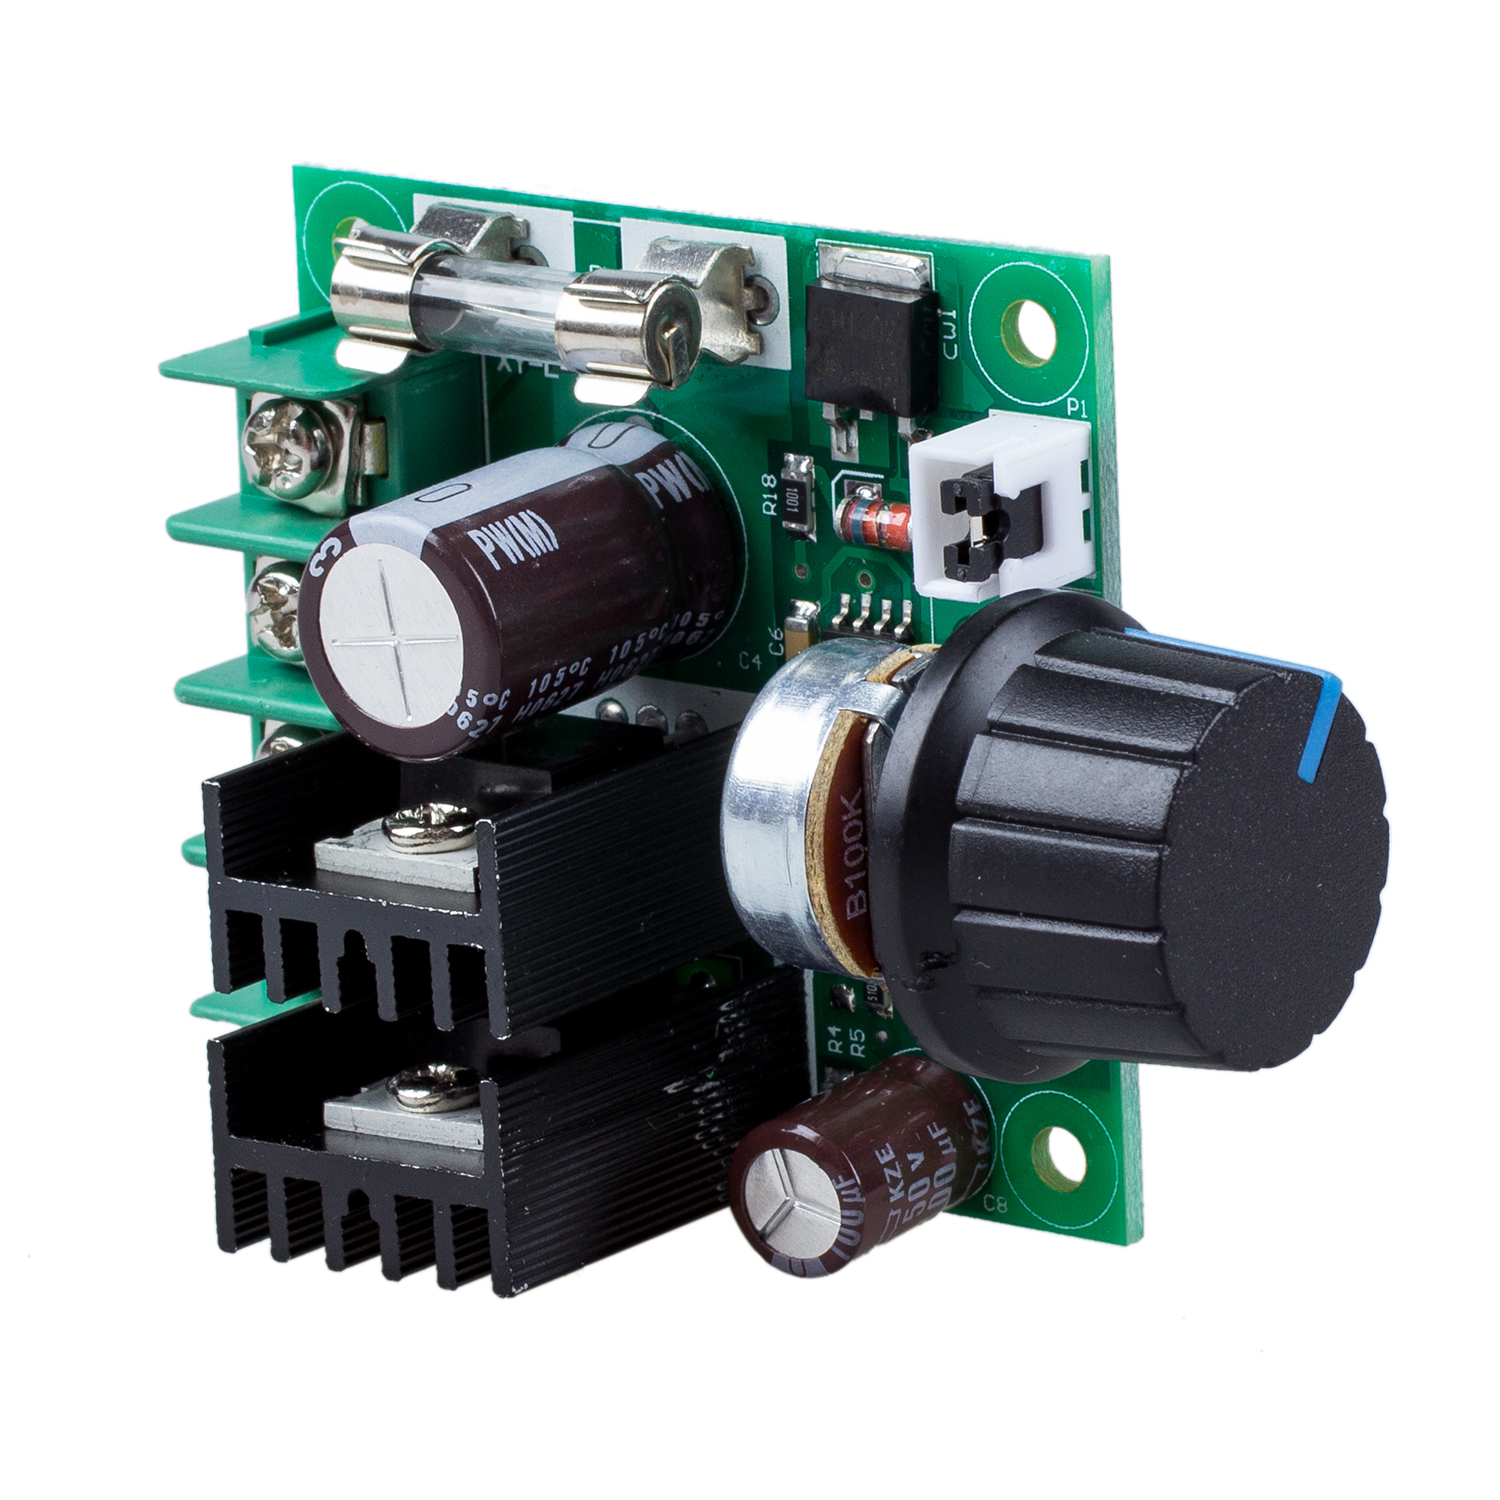 Pwm 10a 12v 40v dc motor speed controller buy in pakistan for 12v dc motor controller